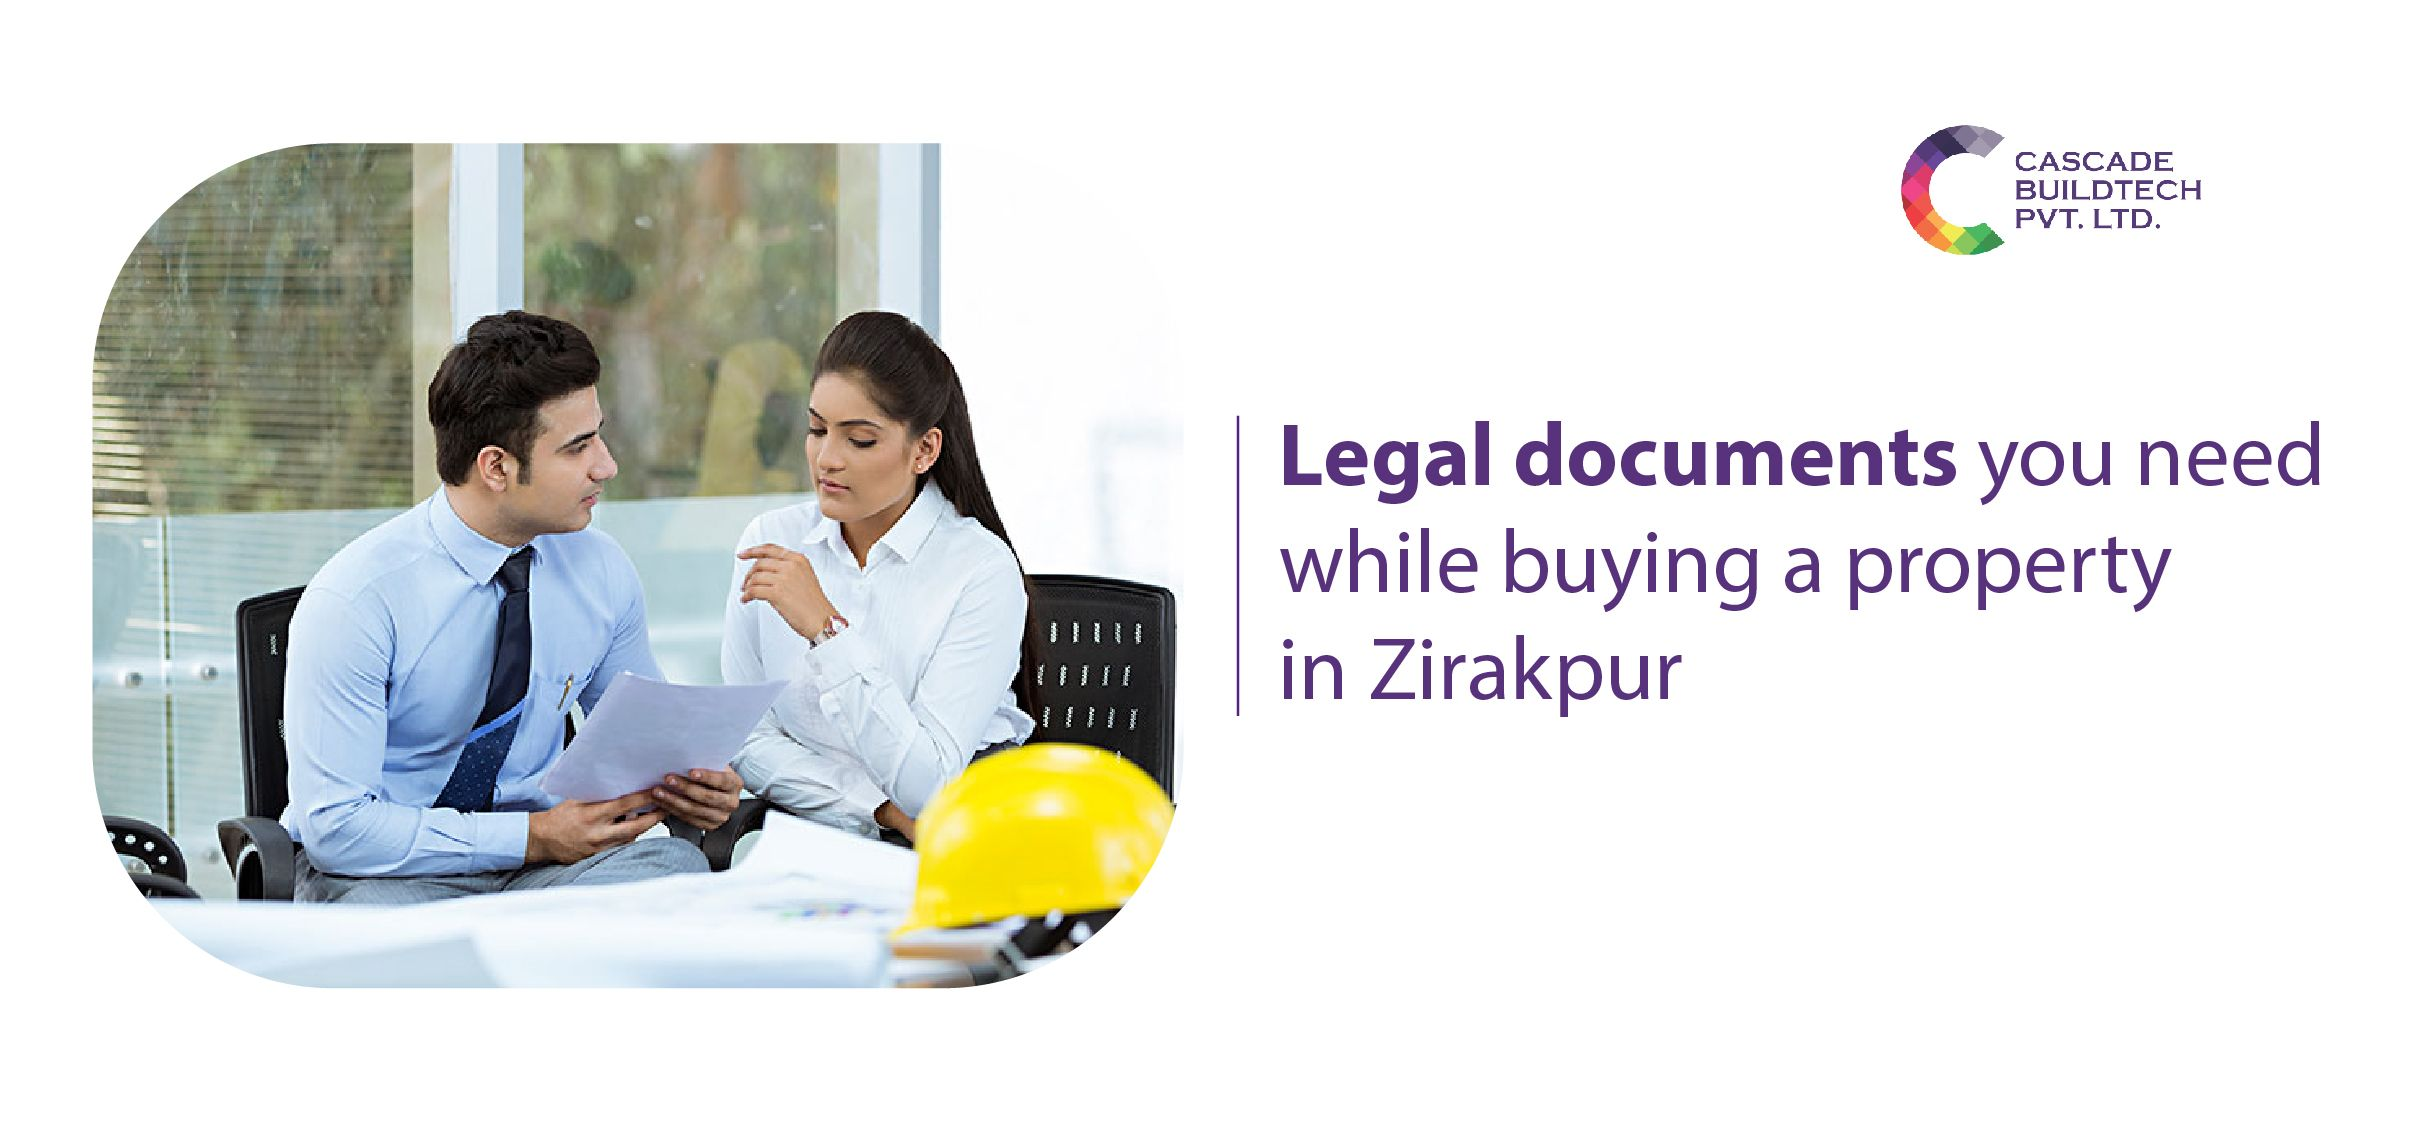 Legal-documents-you-need-while-buying-a-property in Zirakpur